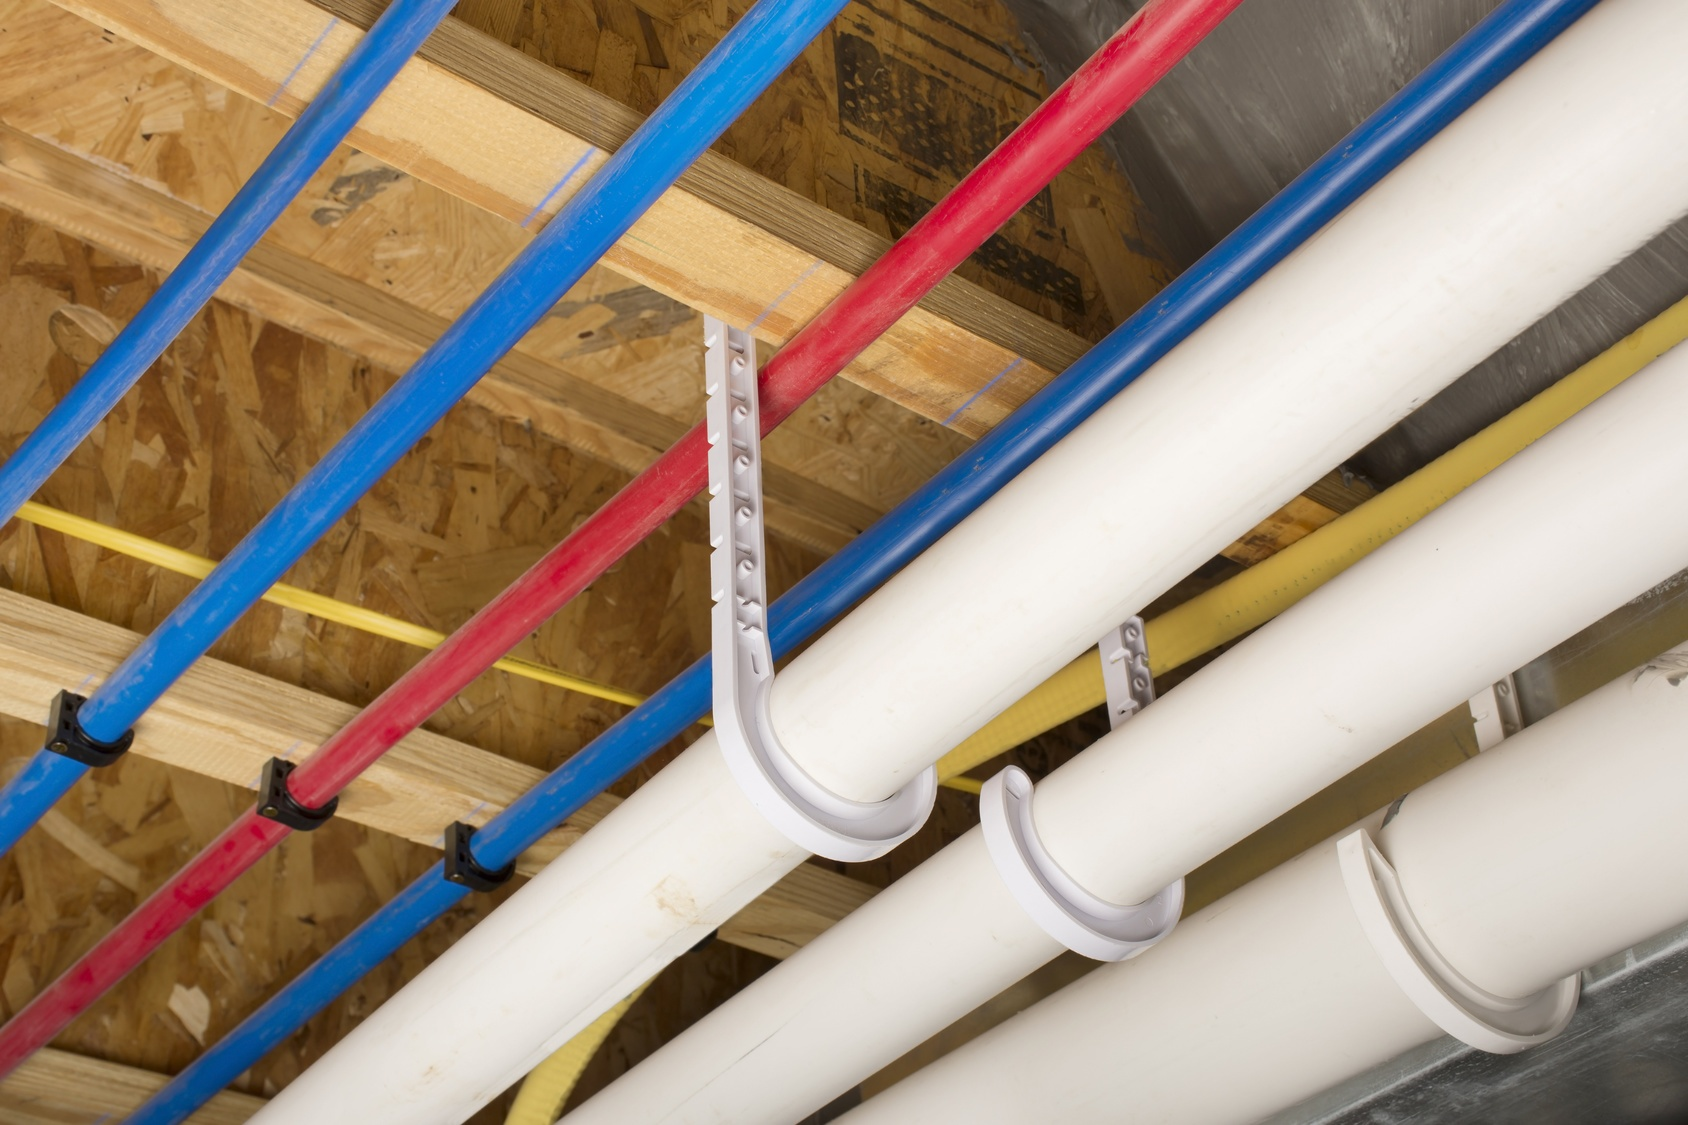 kitchen drain pipe repair redoing a plumbing tips: installing pex pipes